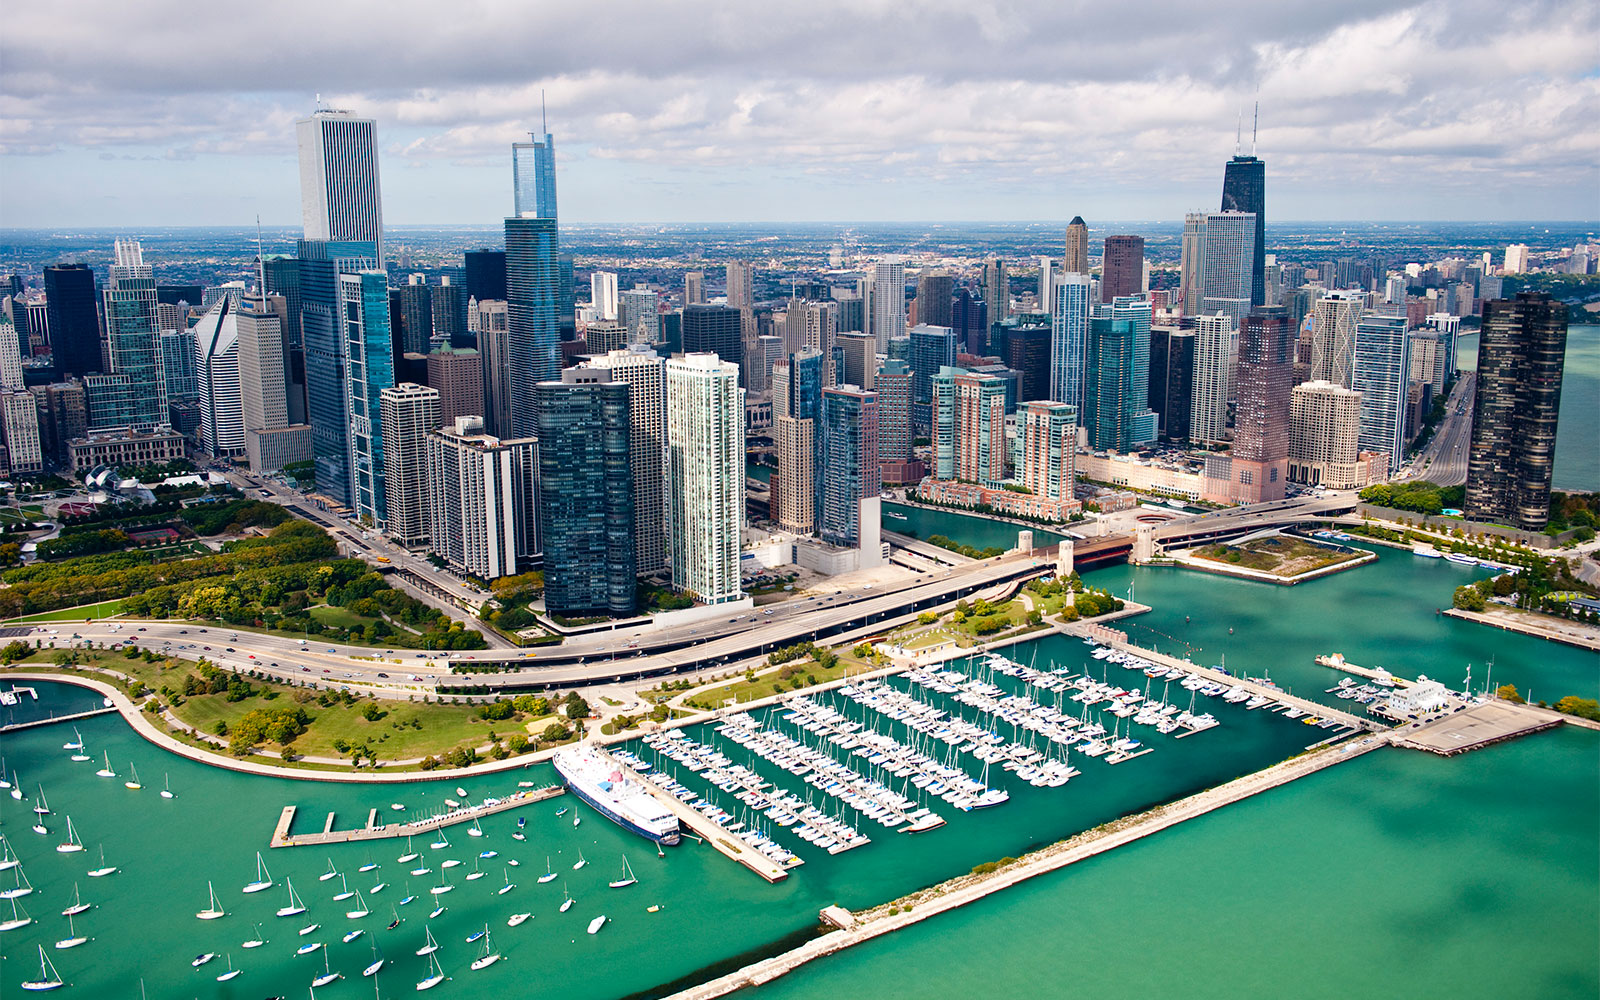 15 Destinations to Inspire Your Next Runner's High: Chicago